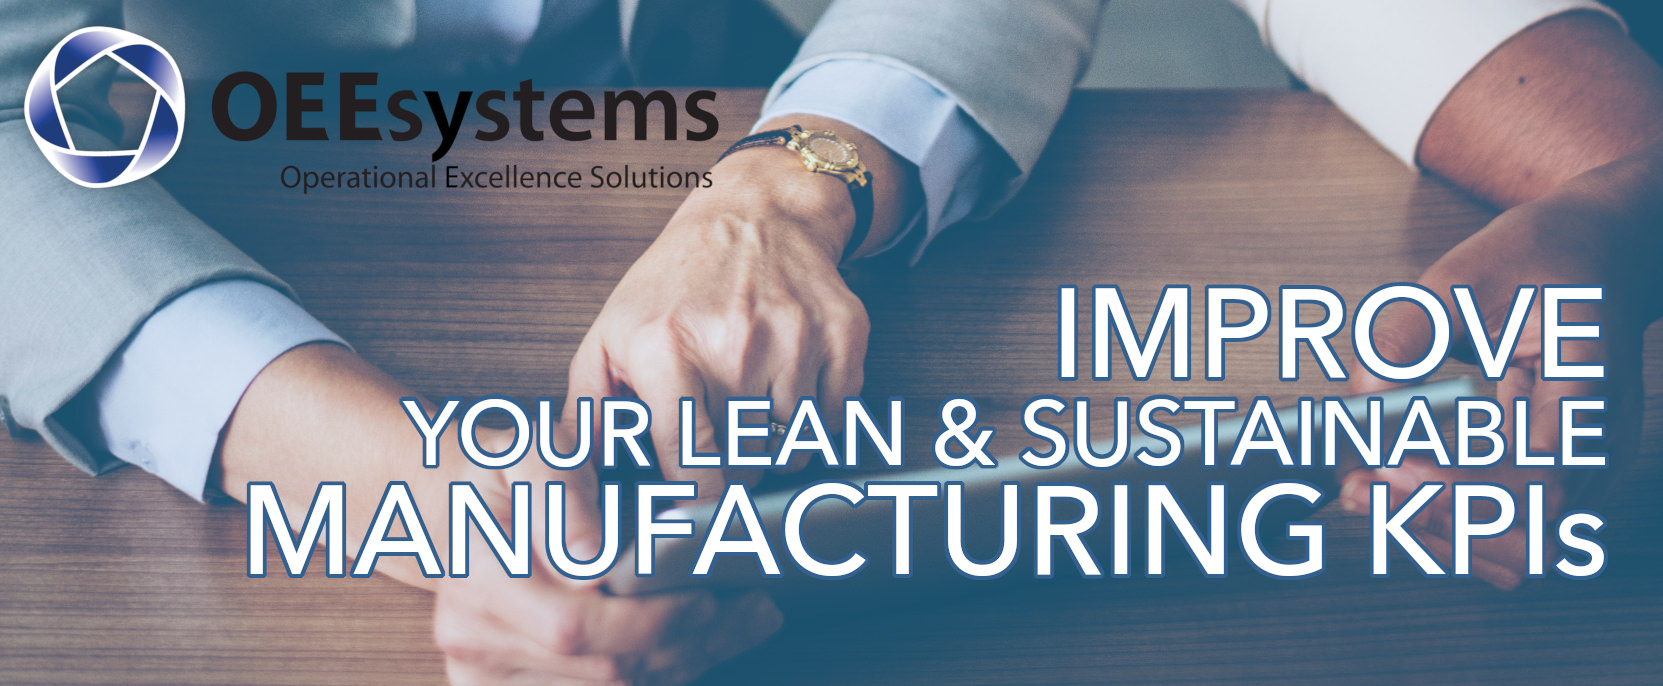 How OEE can help you improve your Lean & Sustainable Manufacturing K.P.I.'s | OEEsystems